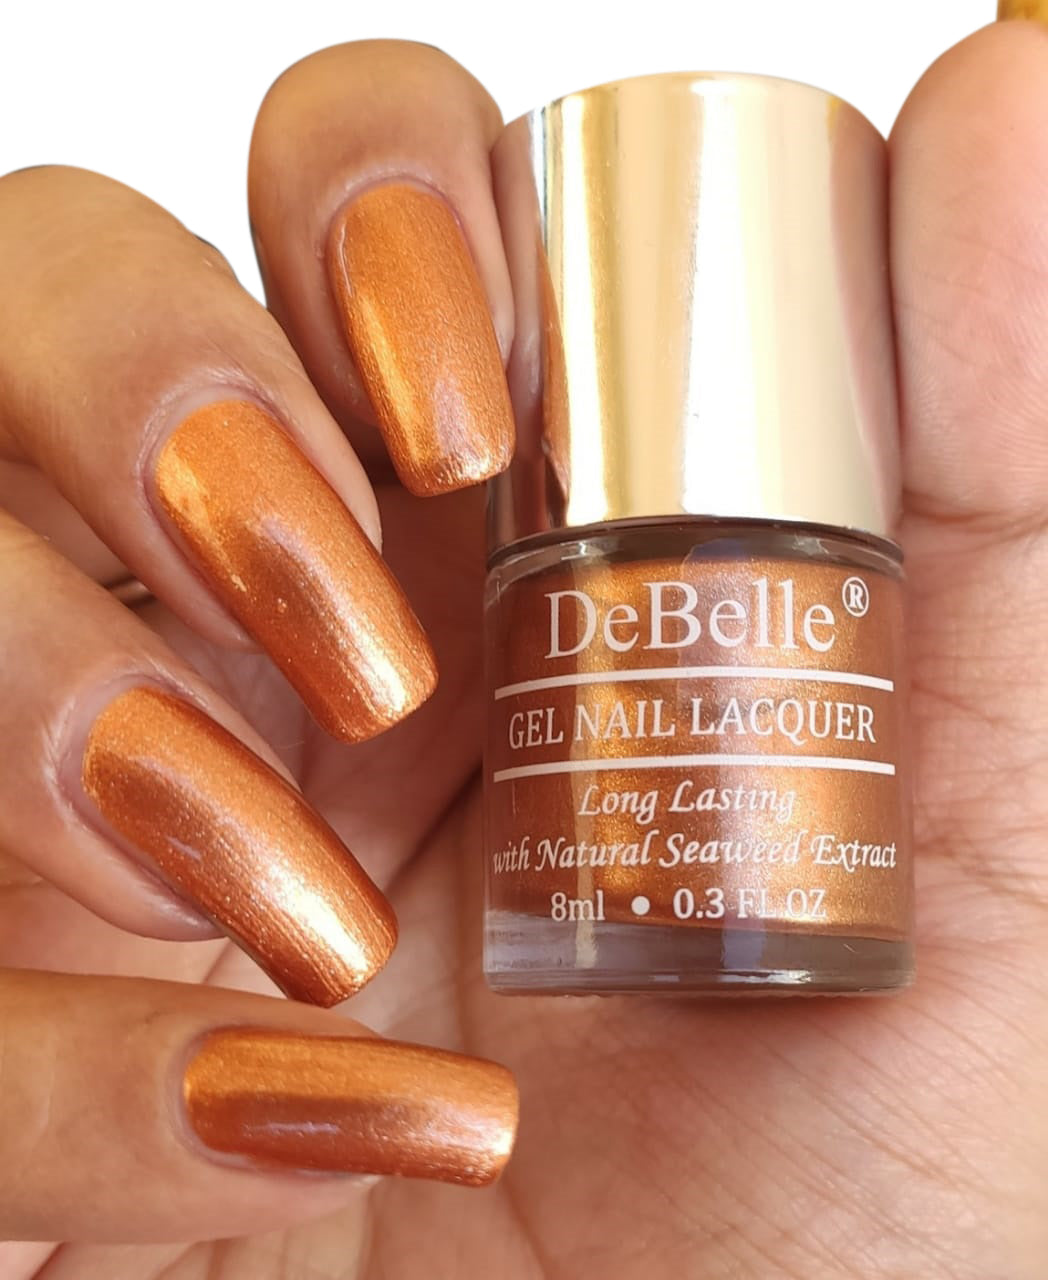 DeBelle Rose Gold Copper Nail Polish Swatch